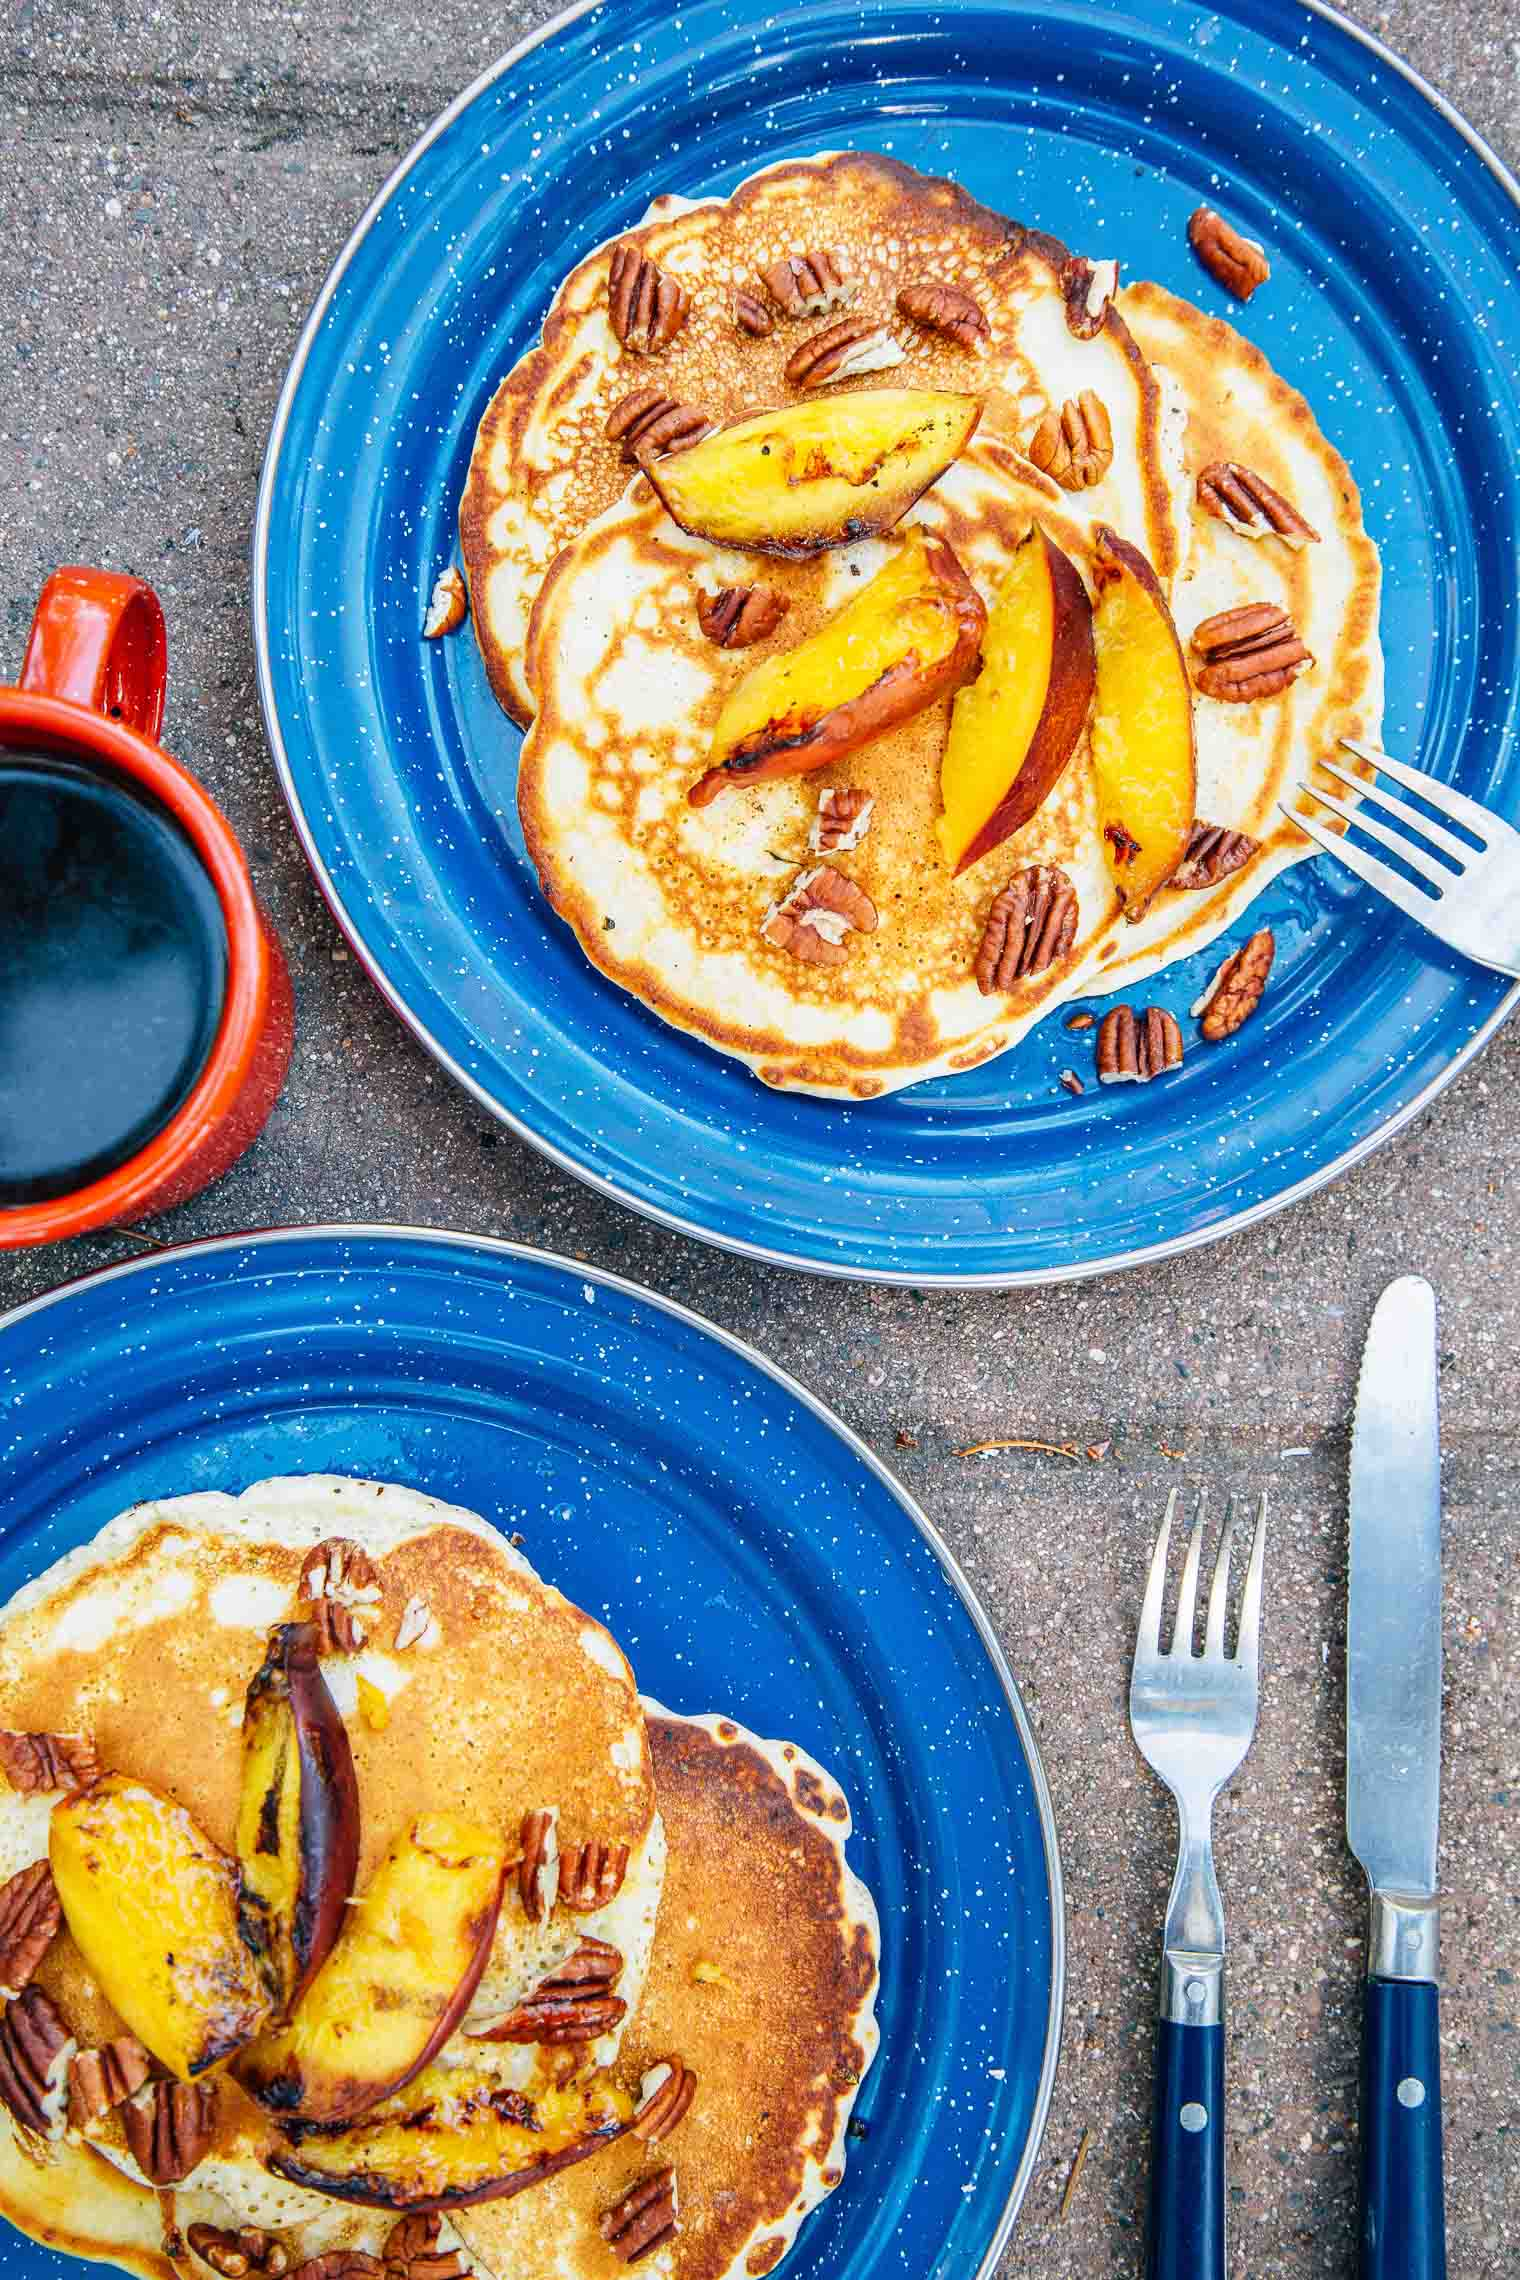 Grilled peach and pecan pancakes stacked on a blue camping plate.